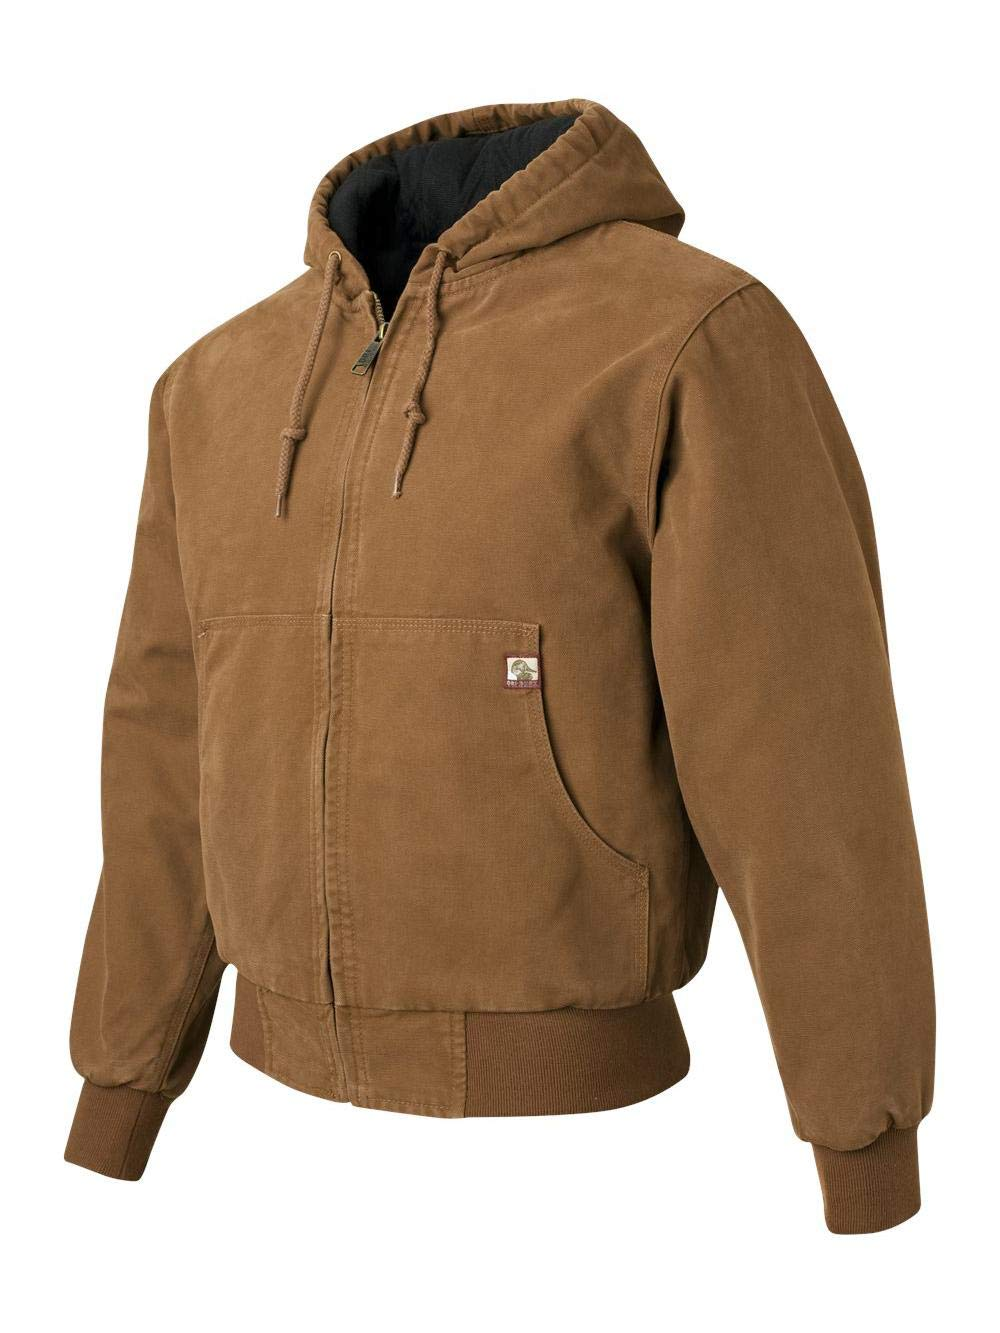 DRI Duck - Cheyenne Hooded Boulder Cloth Jacket with Tricot Quilt Lining - 5020 - XS - Saddle by DRI Duck